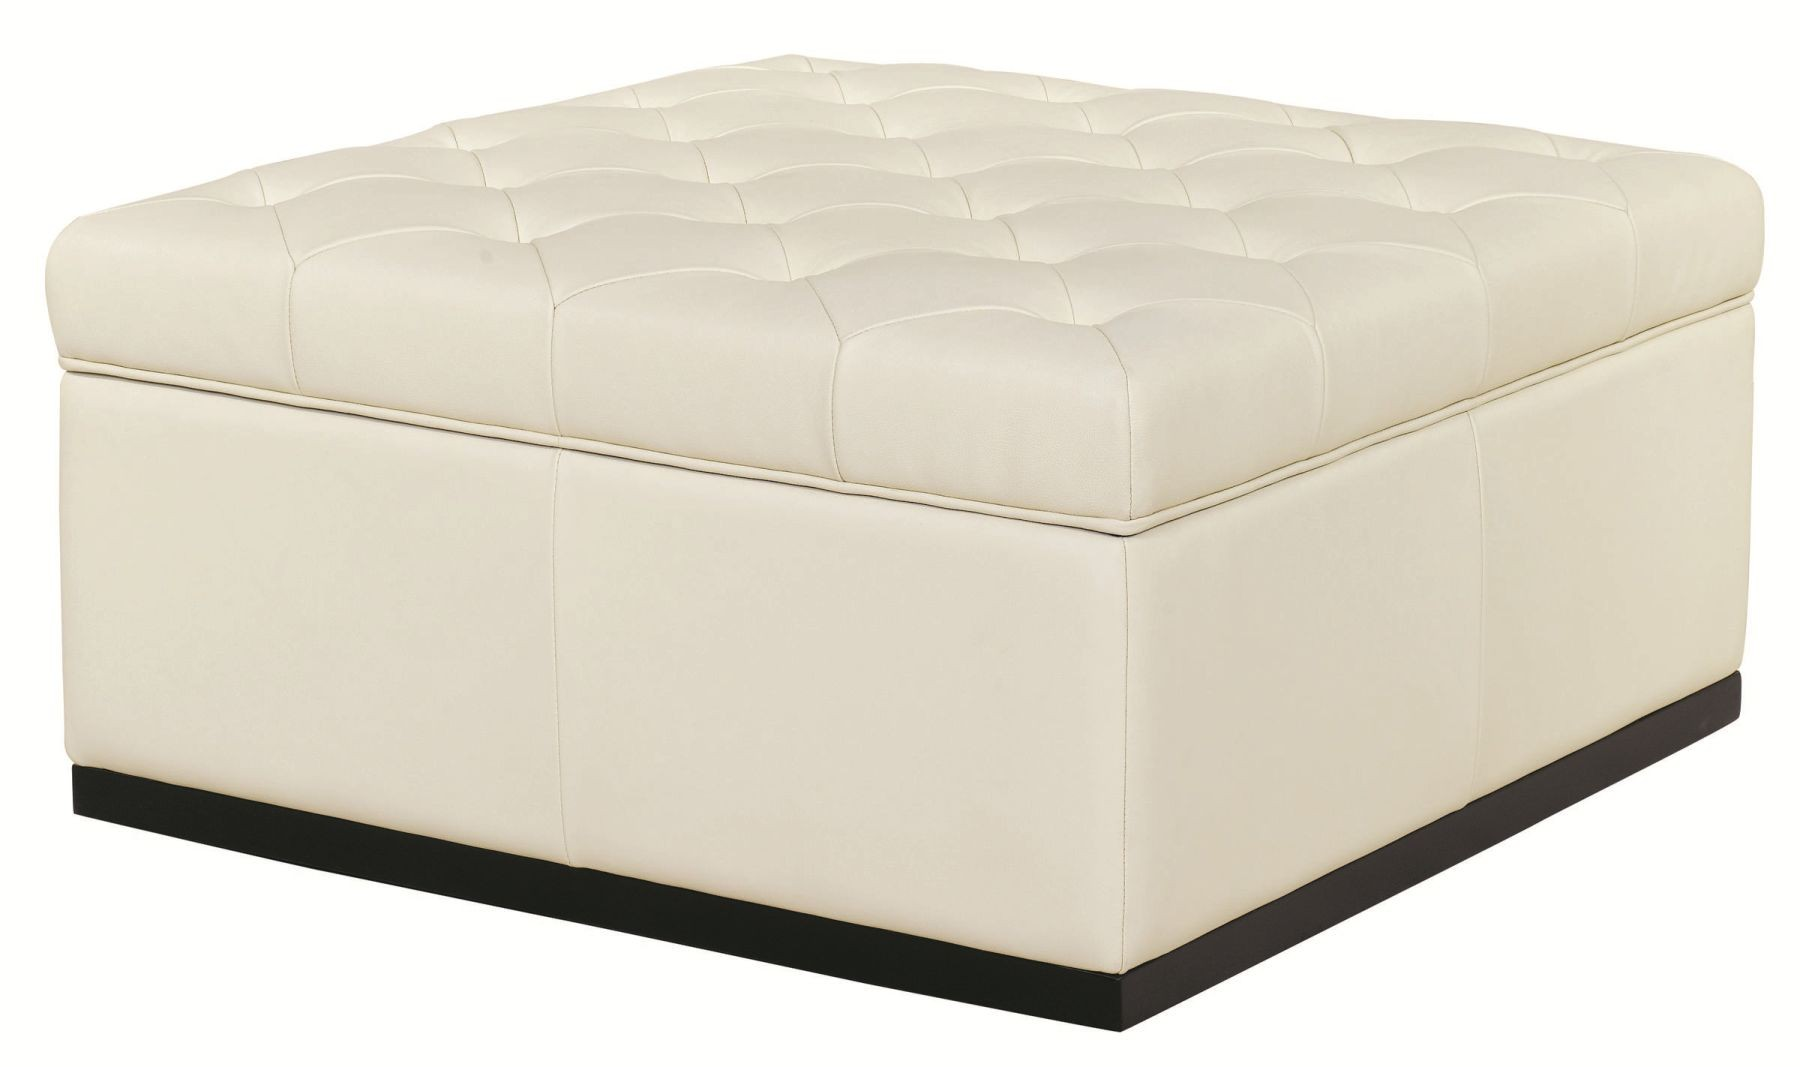 Noah Tufted Cream Storage Ottoman From Sunpan 34943